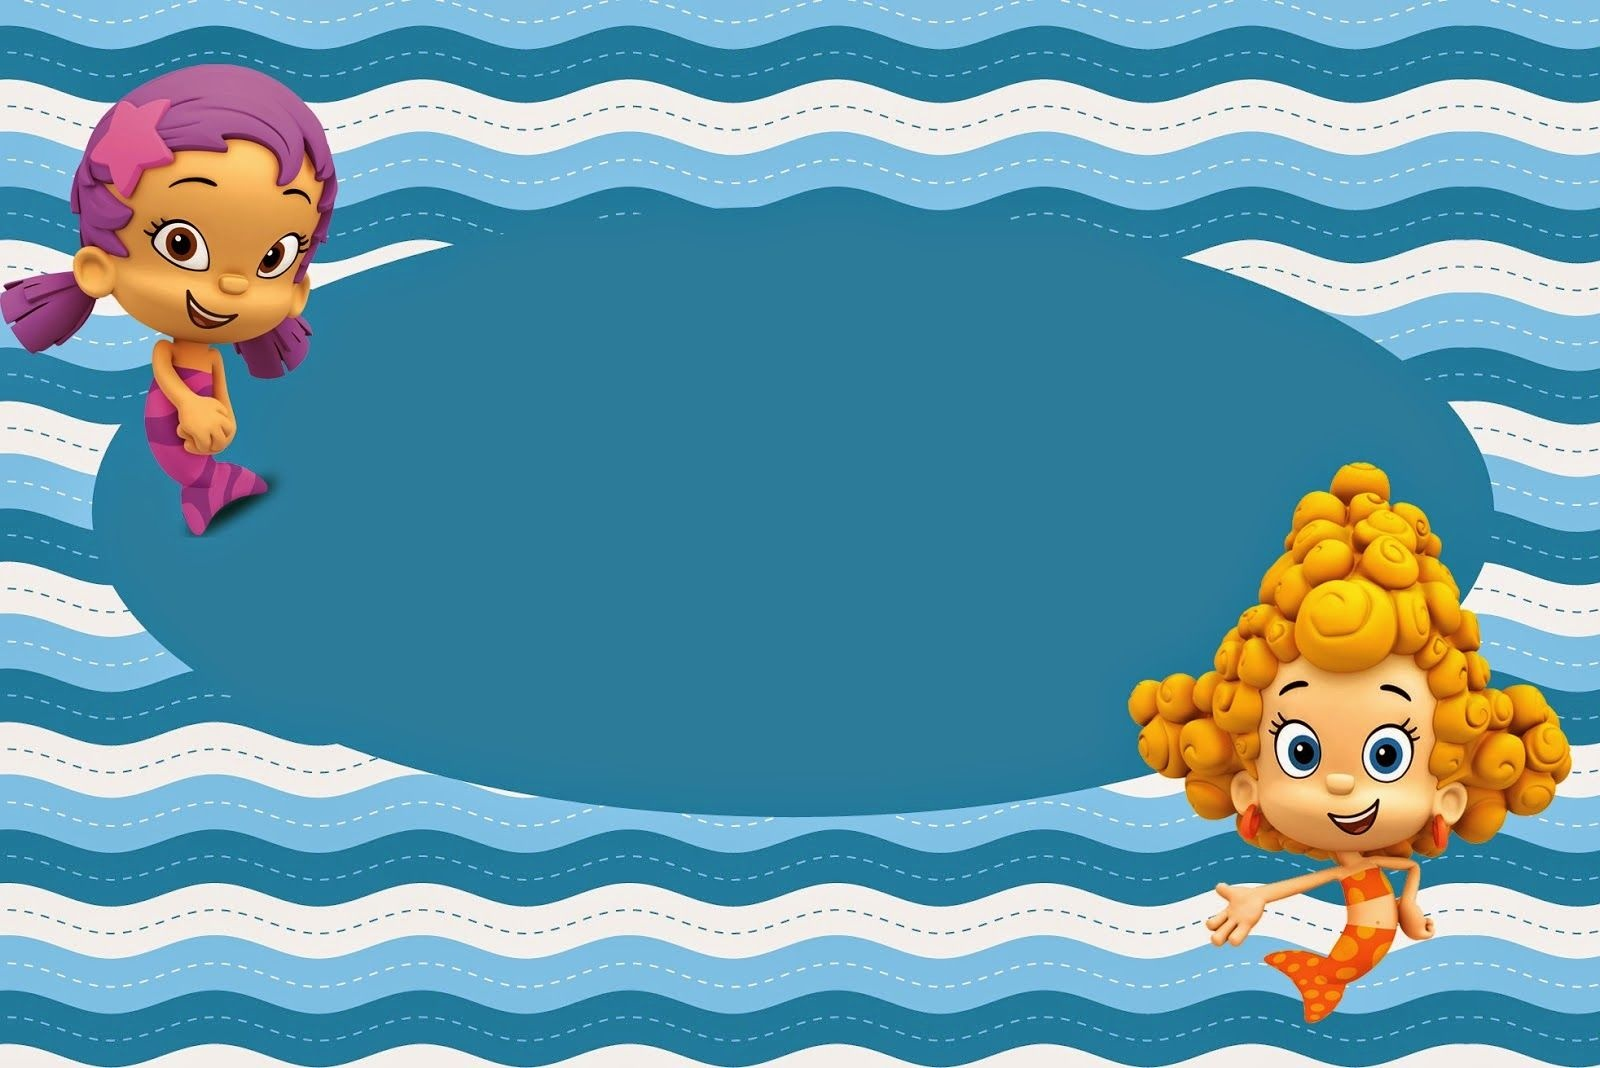 Bubble Guppies Free Printable Invitations. | Bubble Guppy In 2019 - Bubble Guppies Free Printables